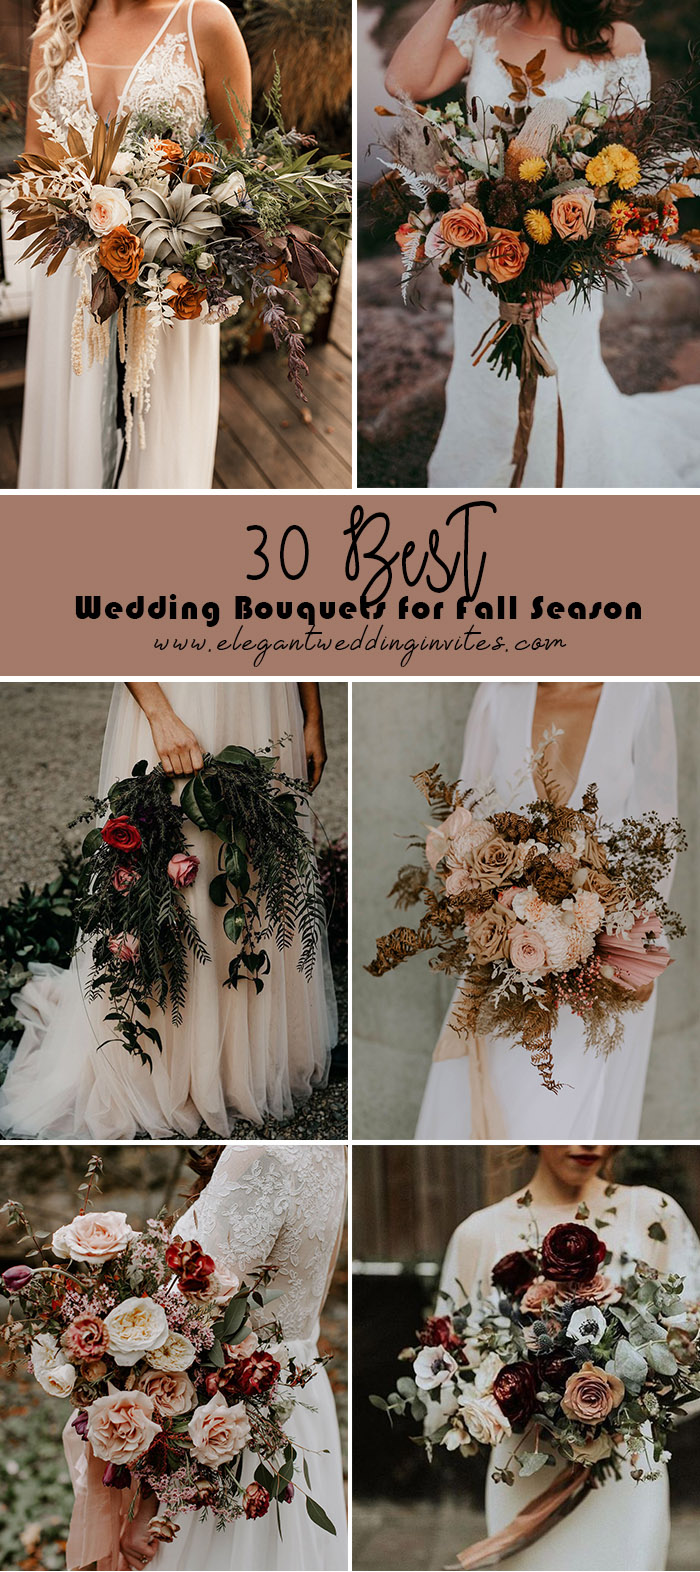 30 best wedding bouquets for fall season